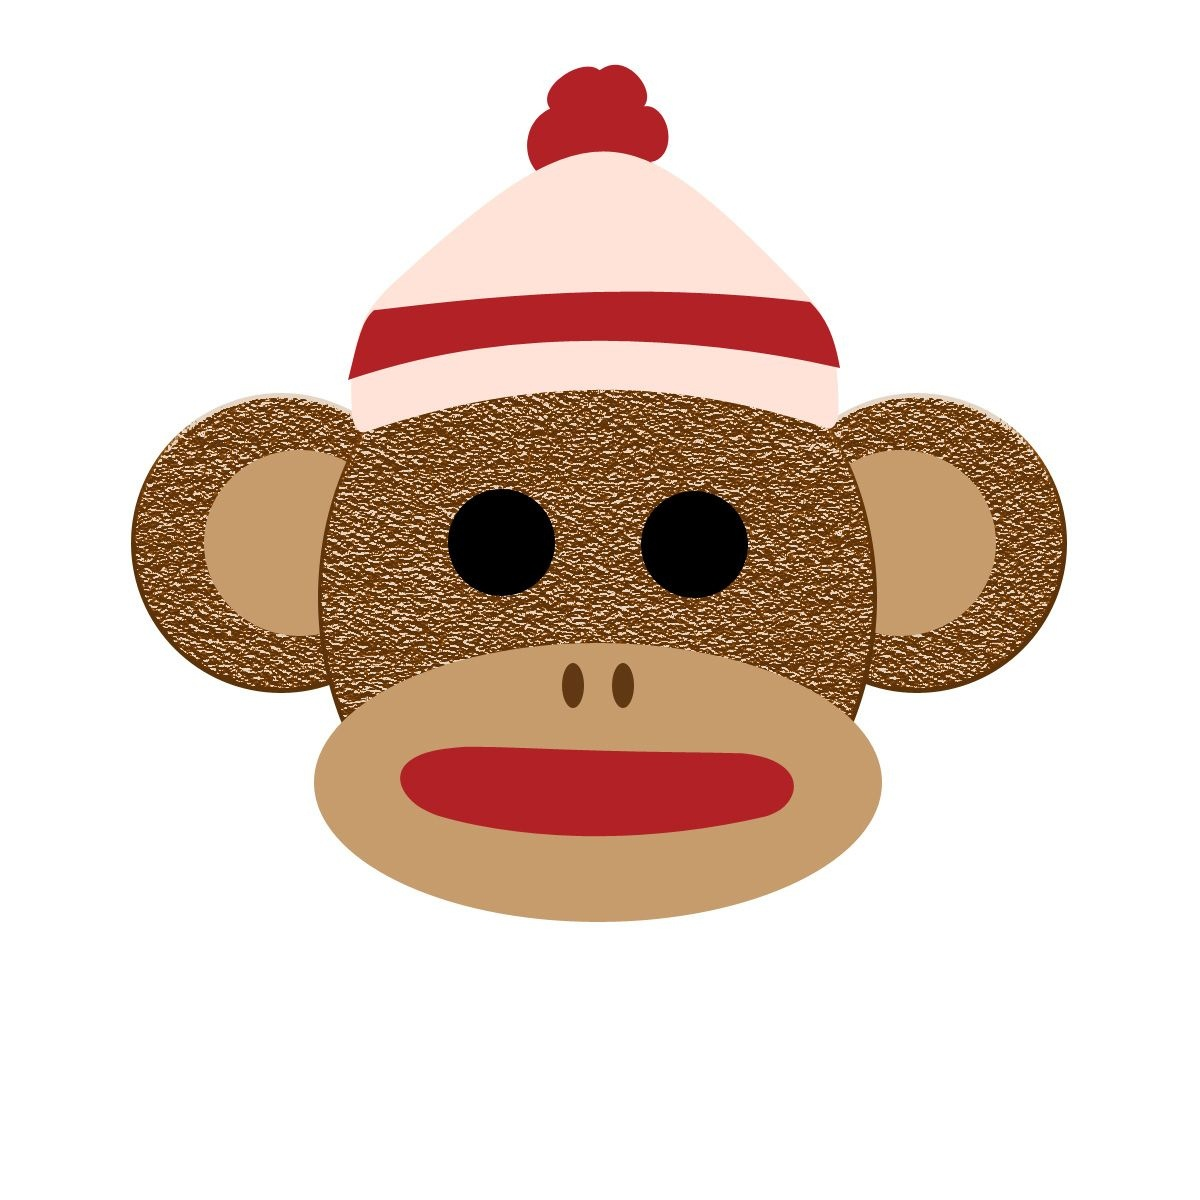 Printable Sock Monkey Clip Art For Free – 101 Clip Art | Monkey - Free Printable Sock Monkey Clip Art